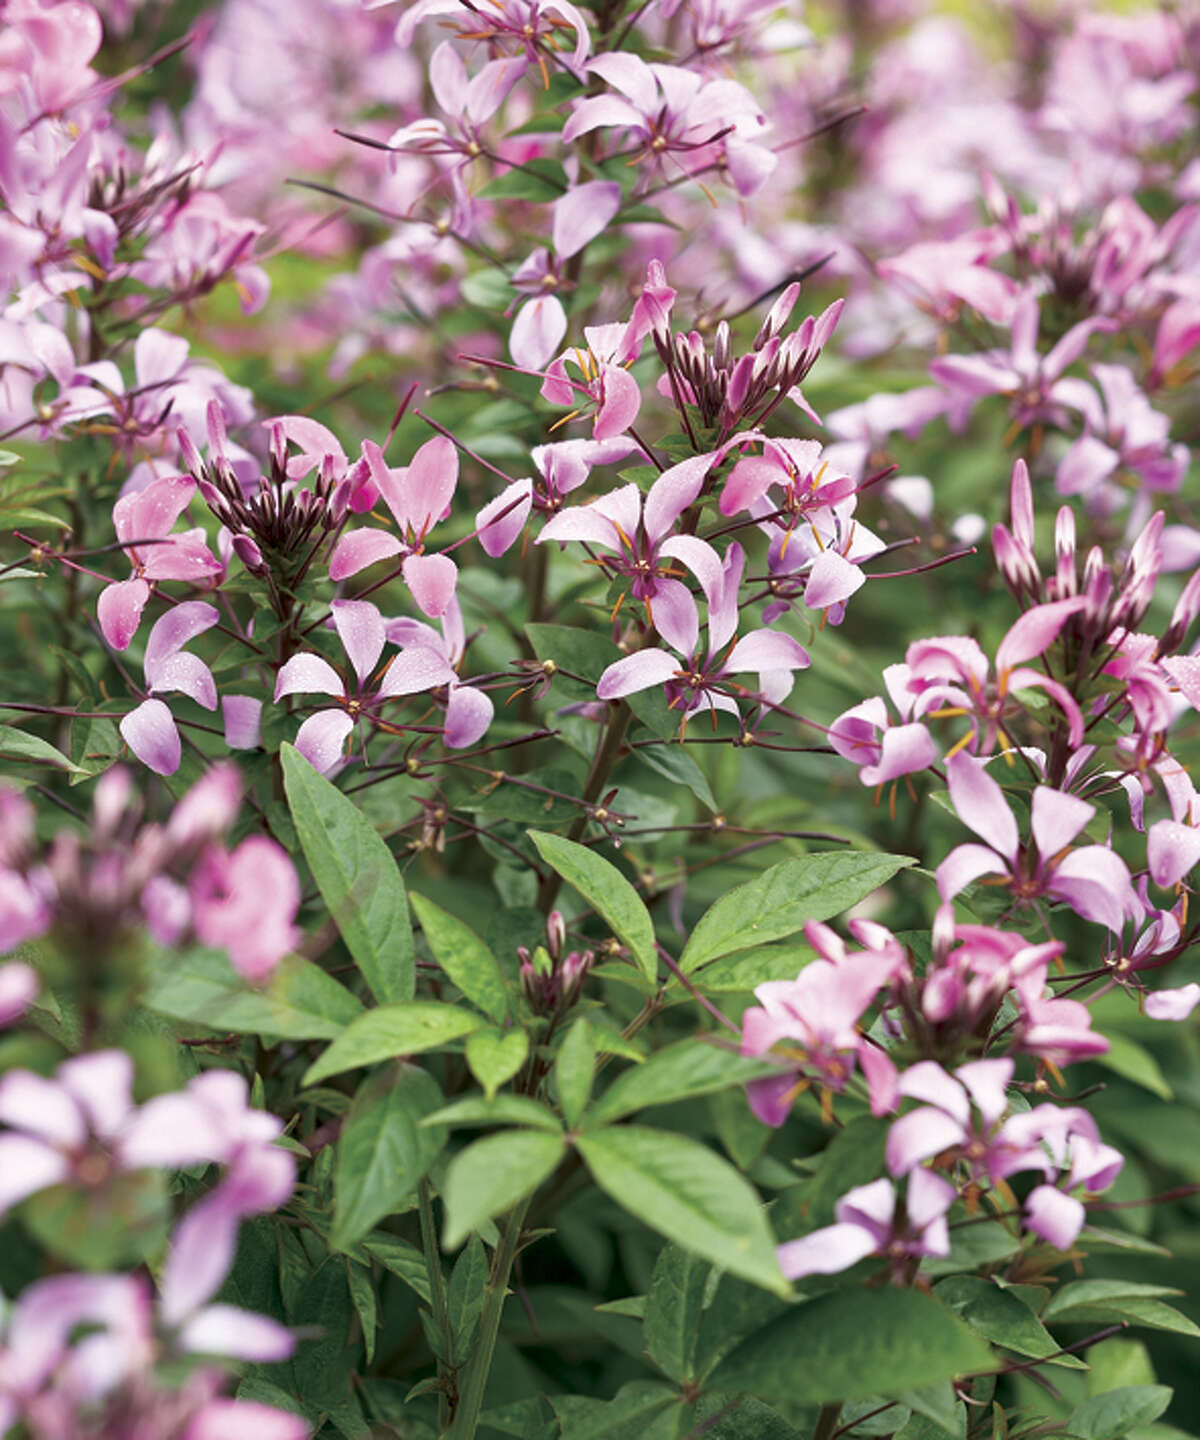 """Seniorita Rosalita cleome. """"This is No. 1 at Memorial Park Golf Course,"""" she said. """"There are no thorns and no seeds. But it does not like to be cut back."""" Proven Winners photo"""